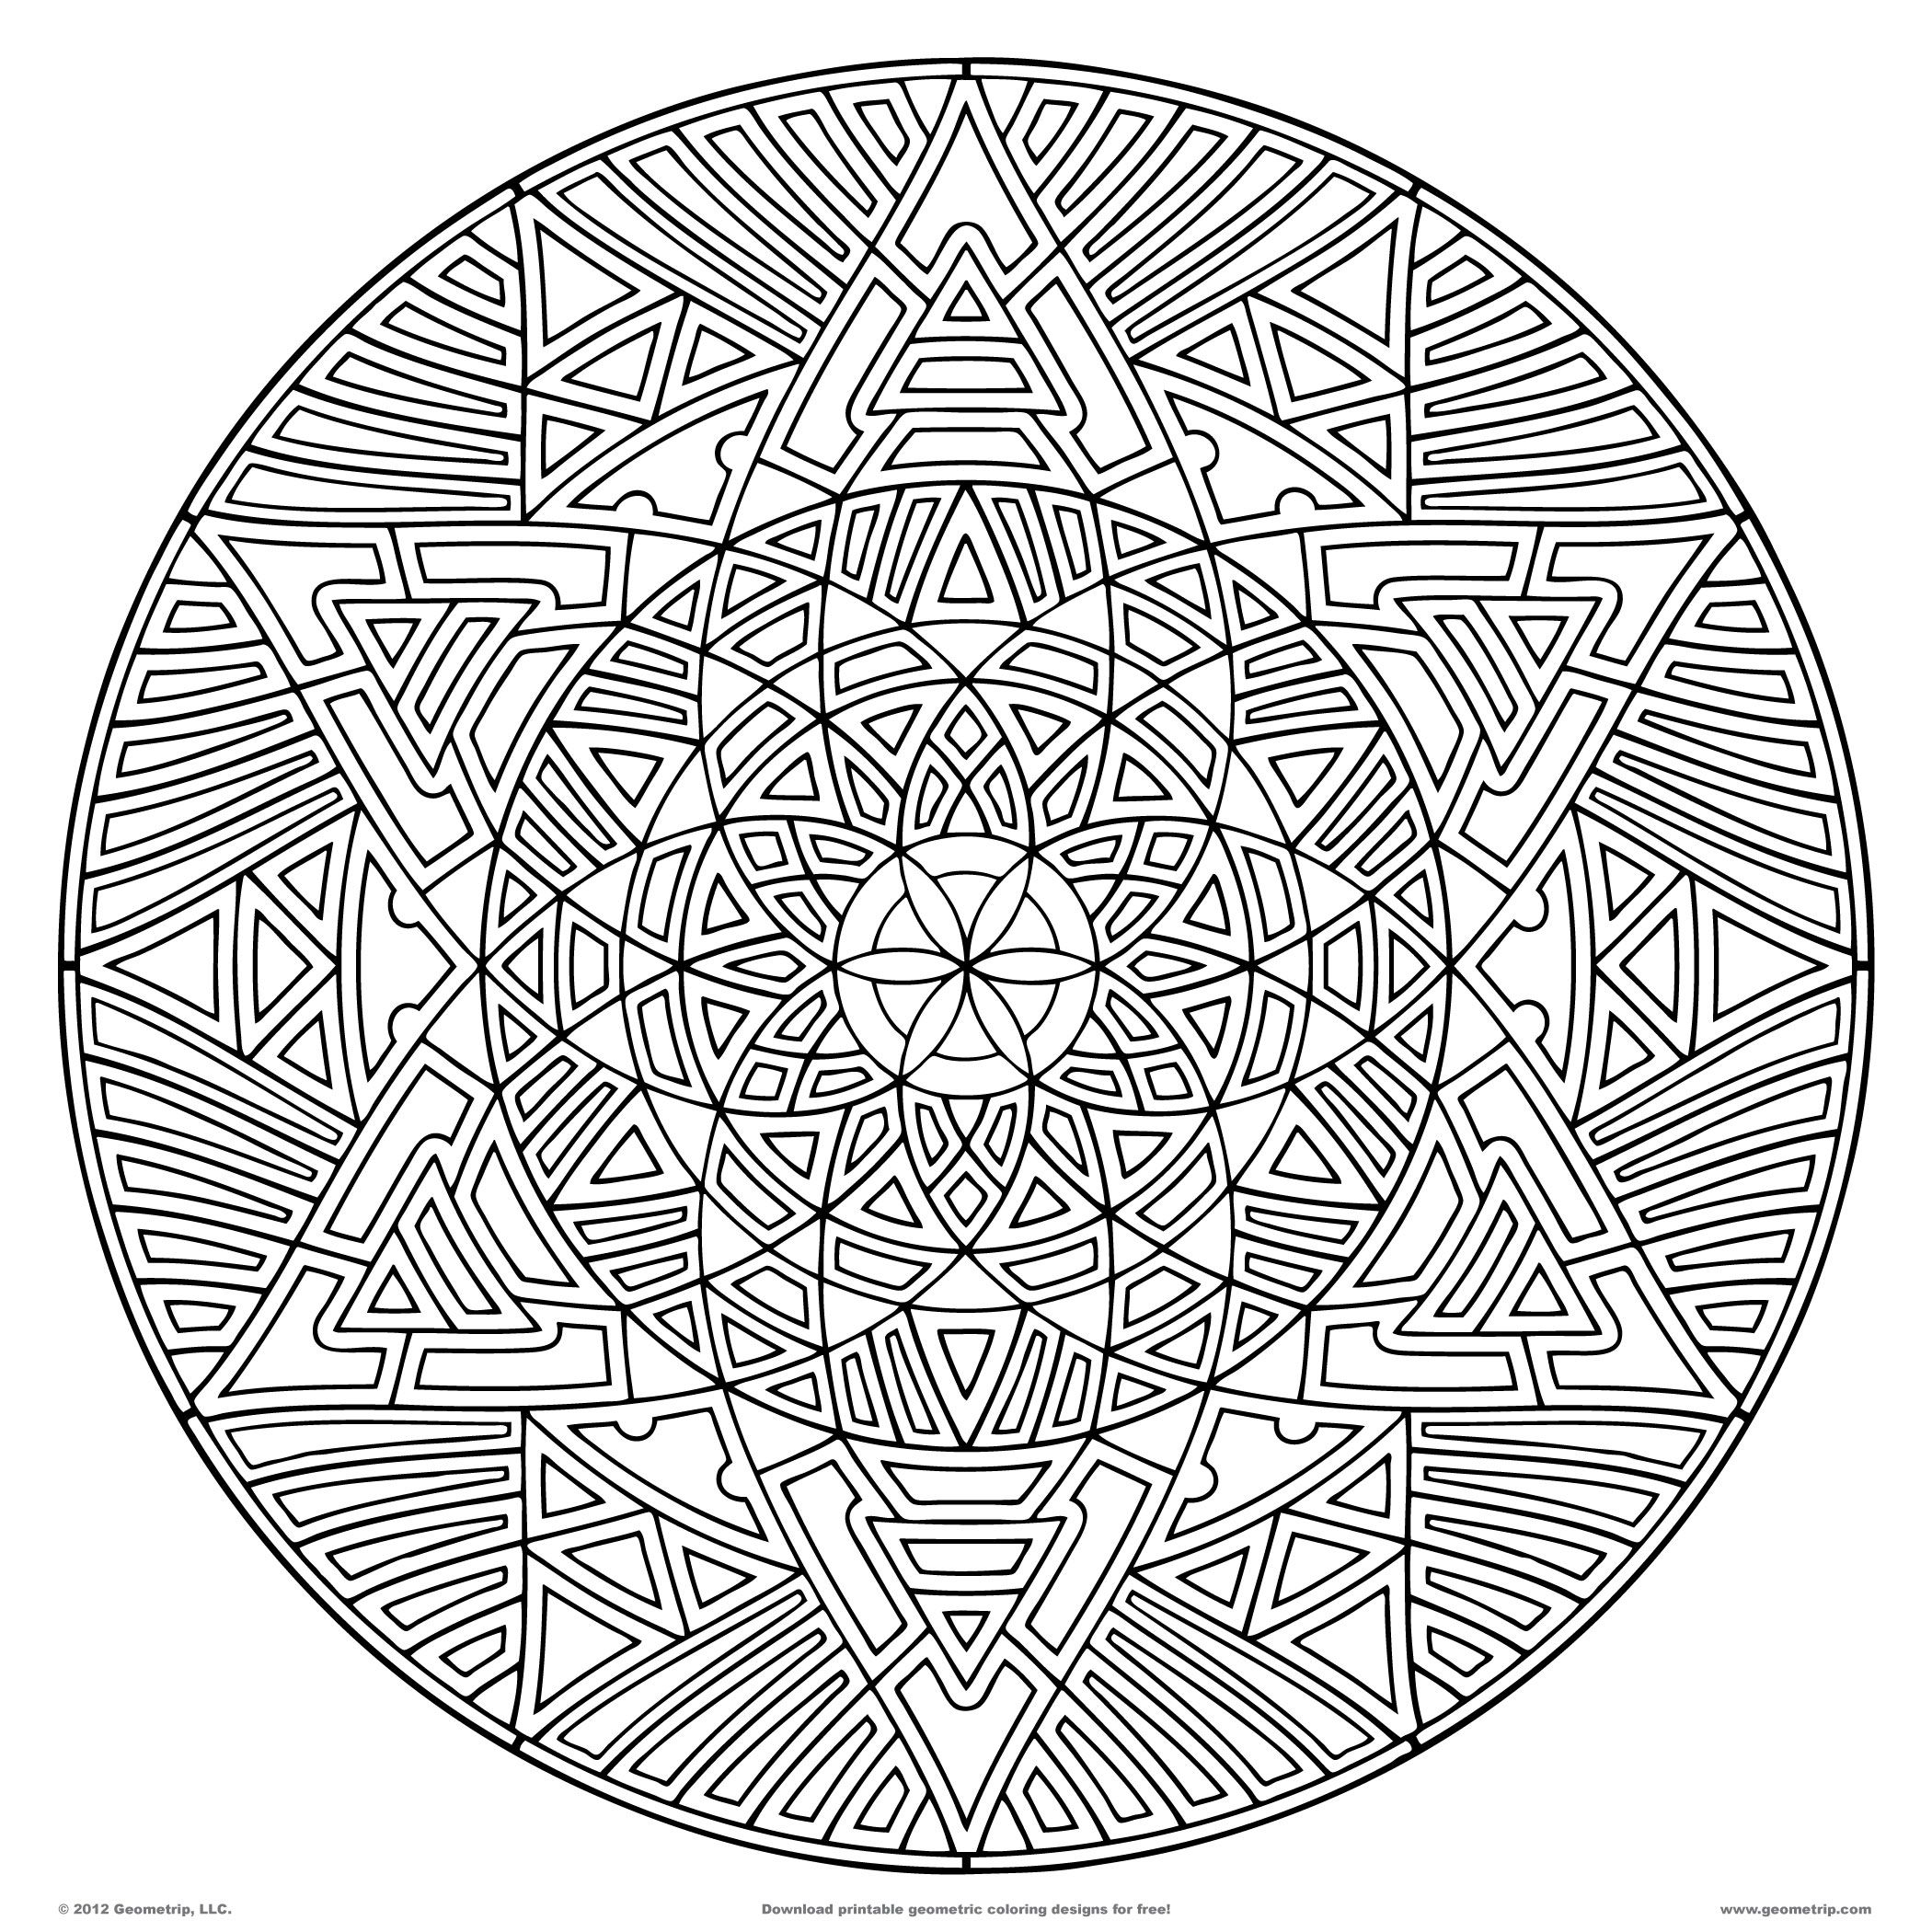 Hard Coloring Pages Pdf Free Online Printable Sheets For Kids Get The Latest Images Favorite